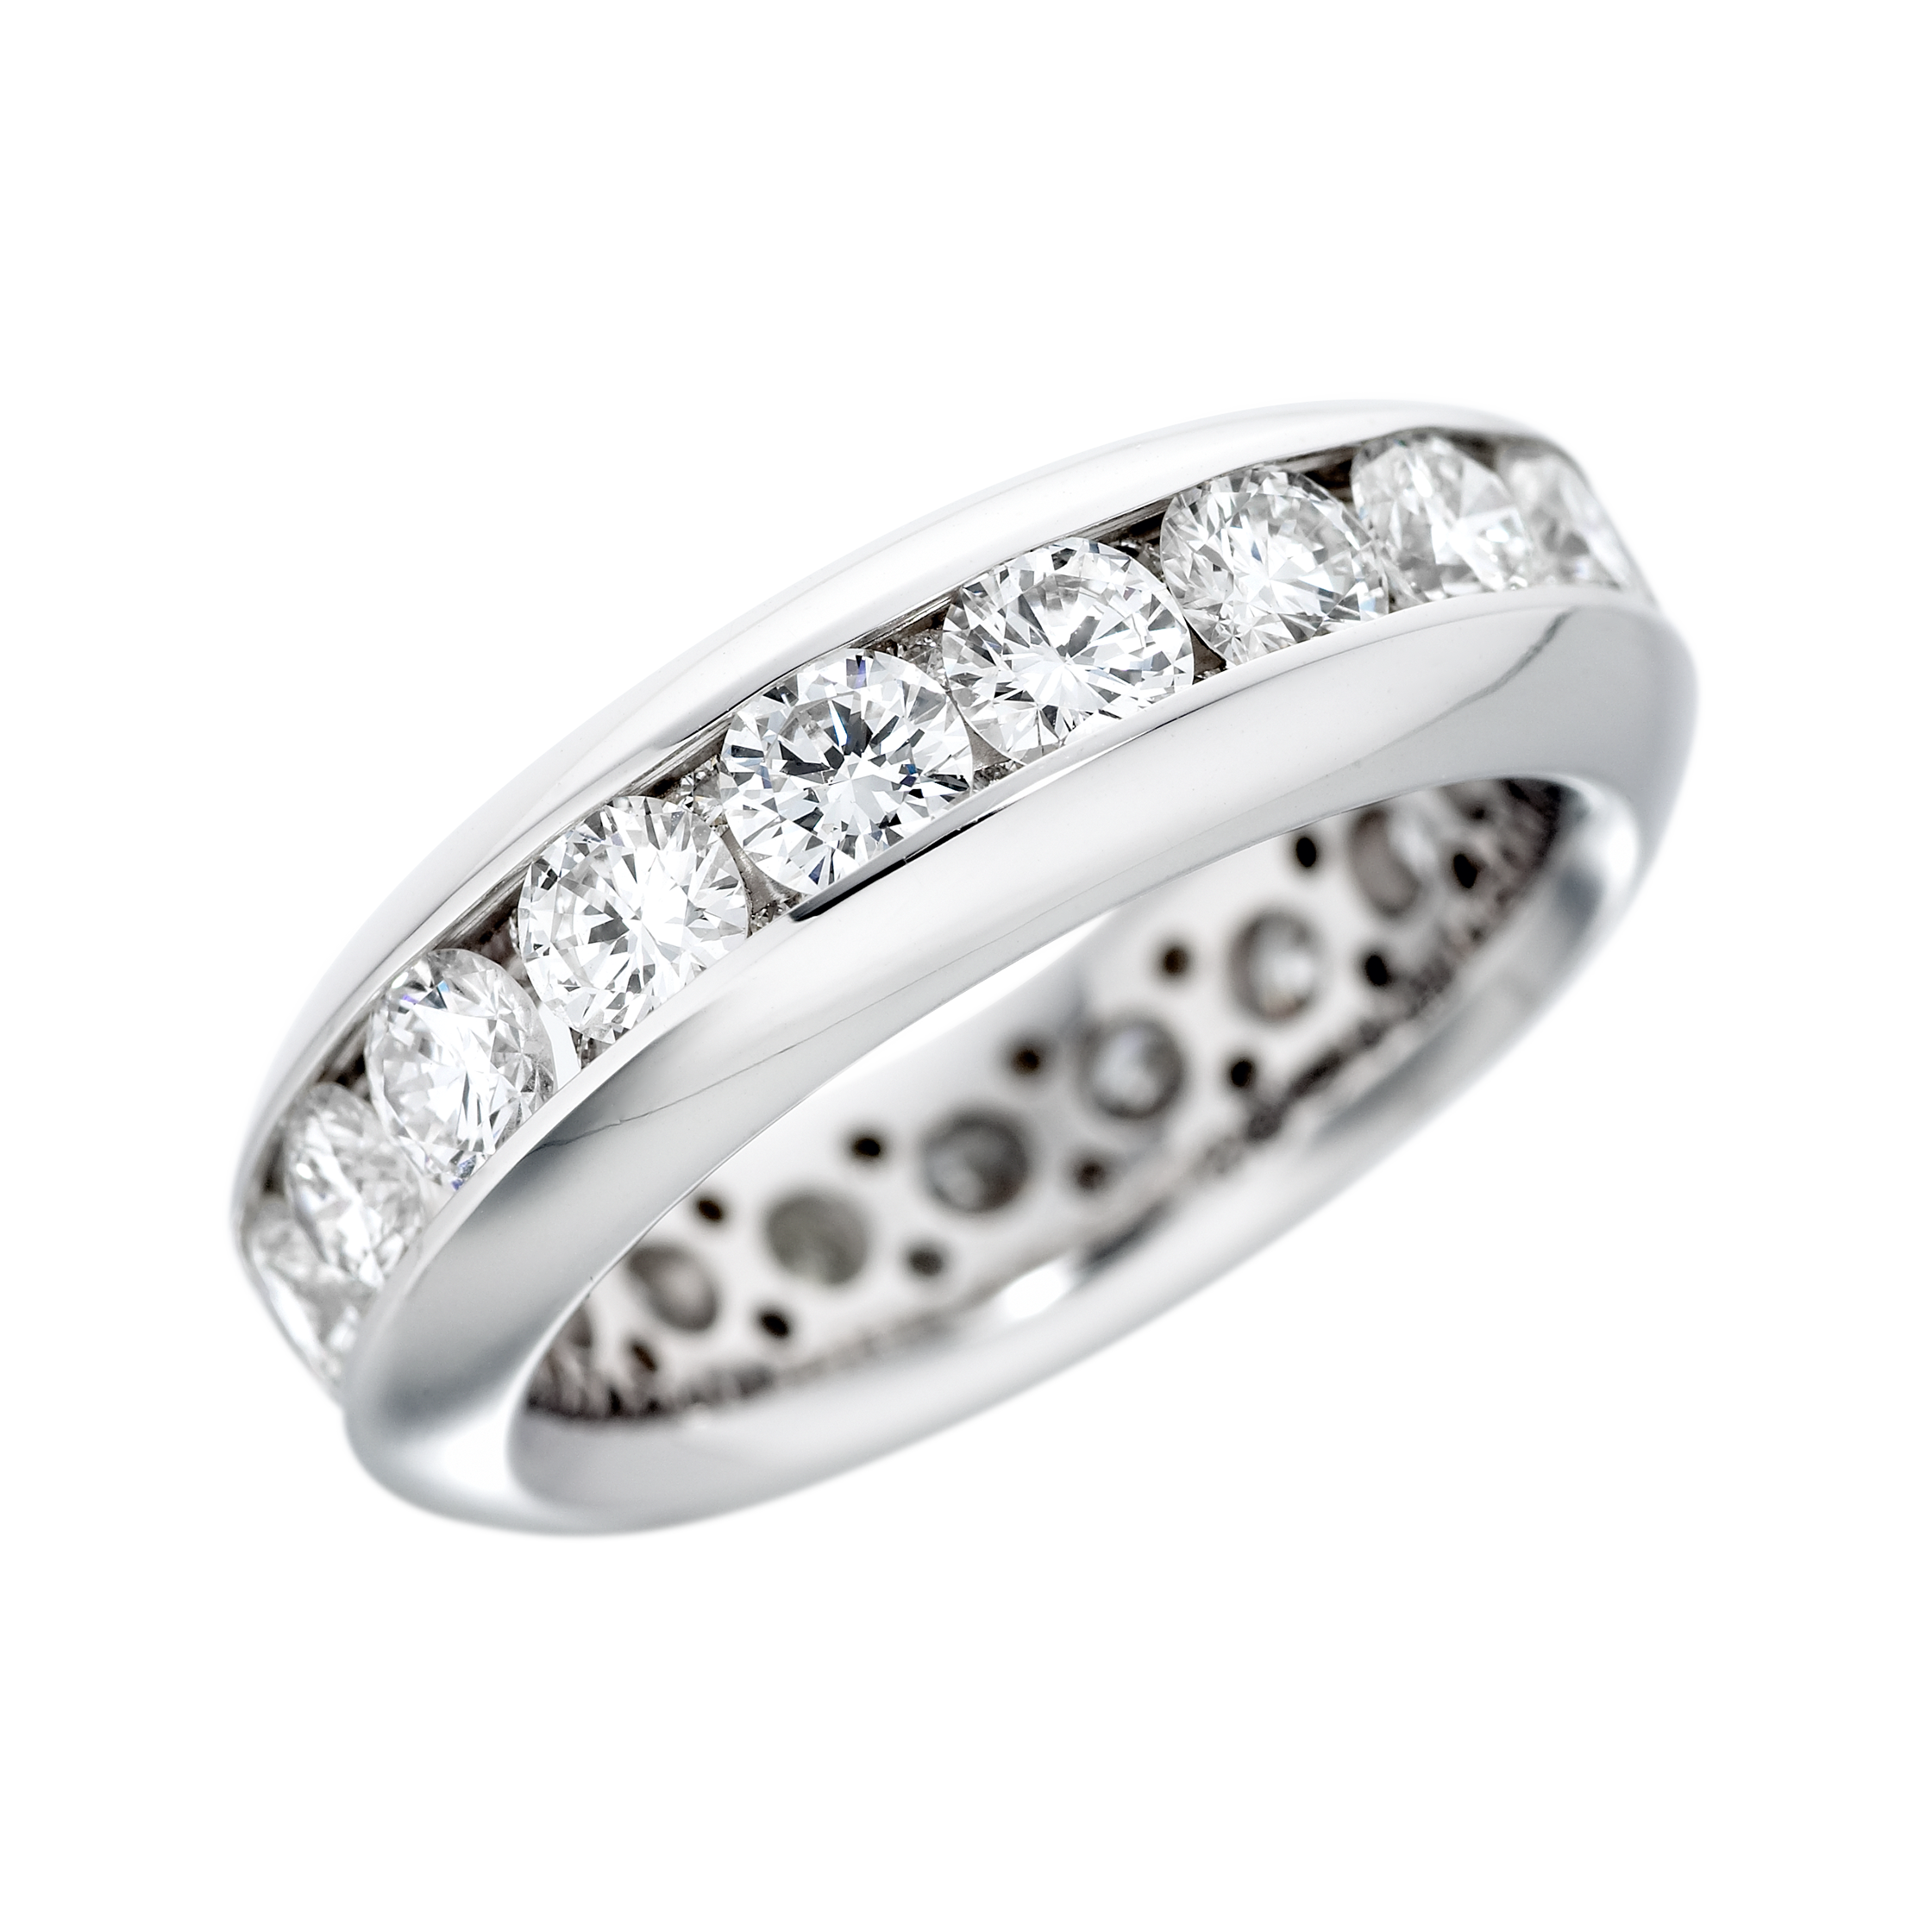 rings diamore centres type piece charm set ring engagement two bridal silver diamond sterling